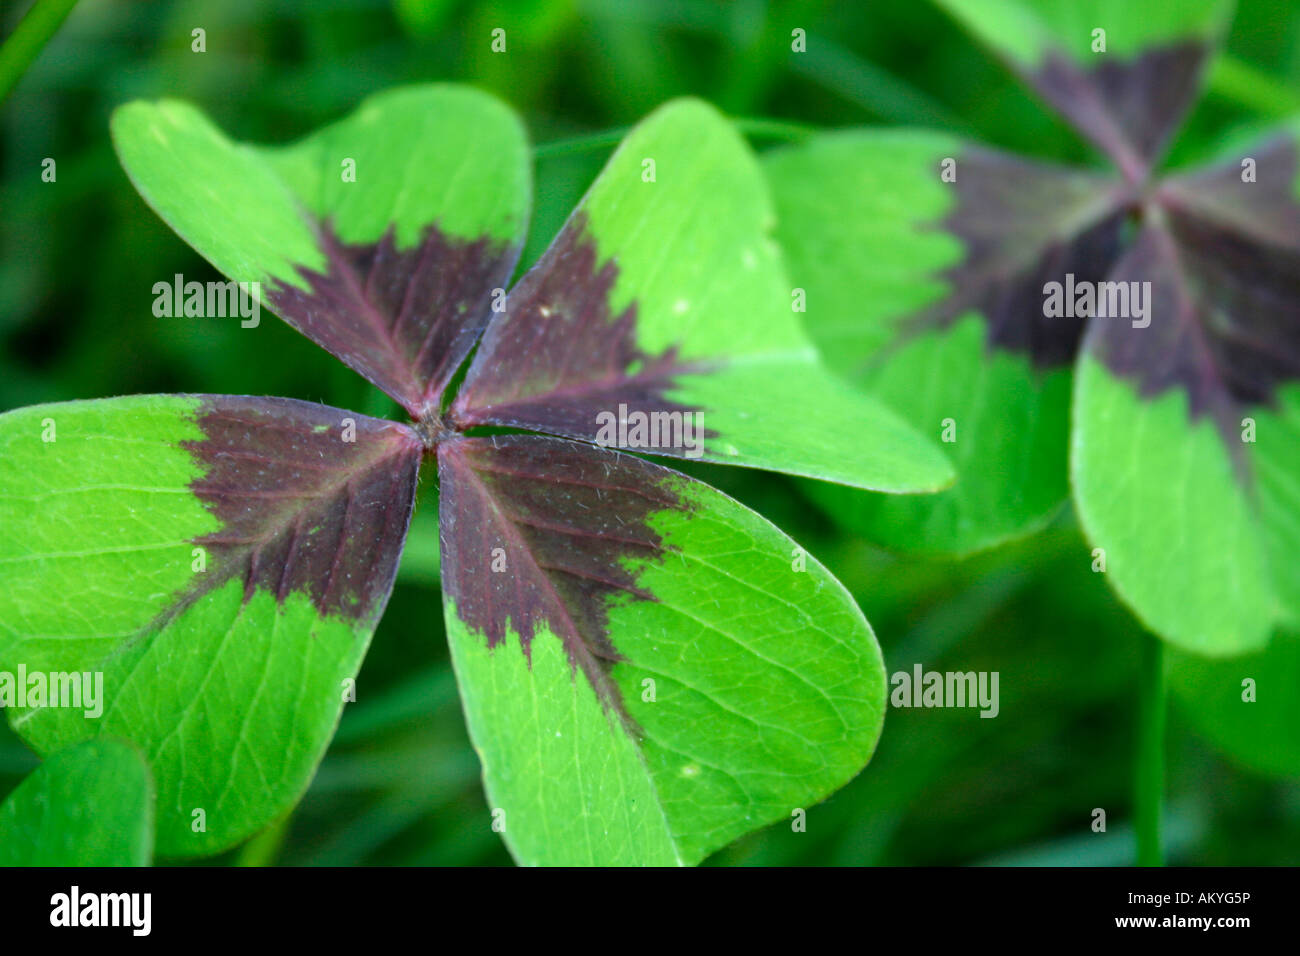 Clover with four leafs, (Trifolium) - Stock Image